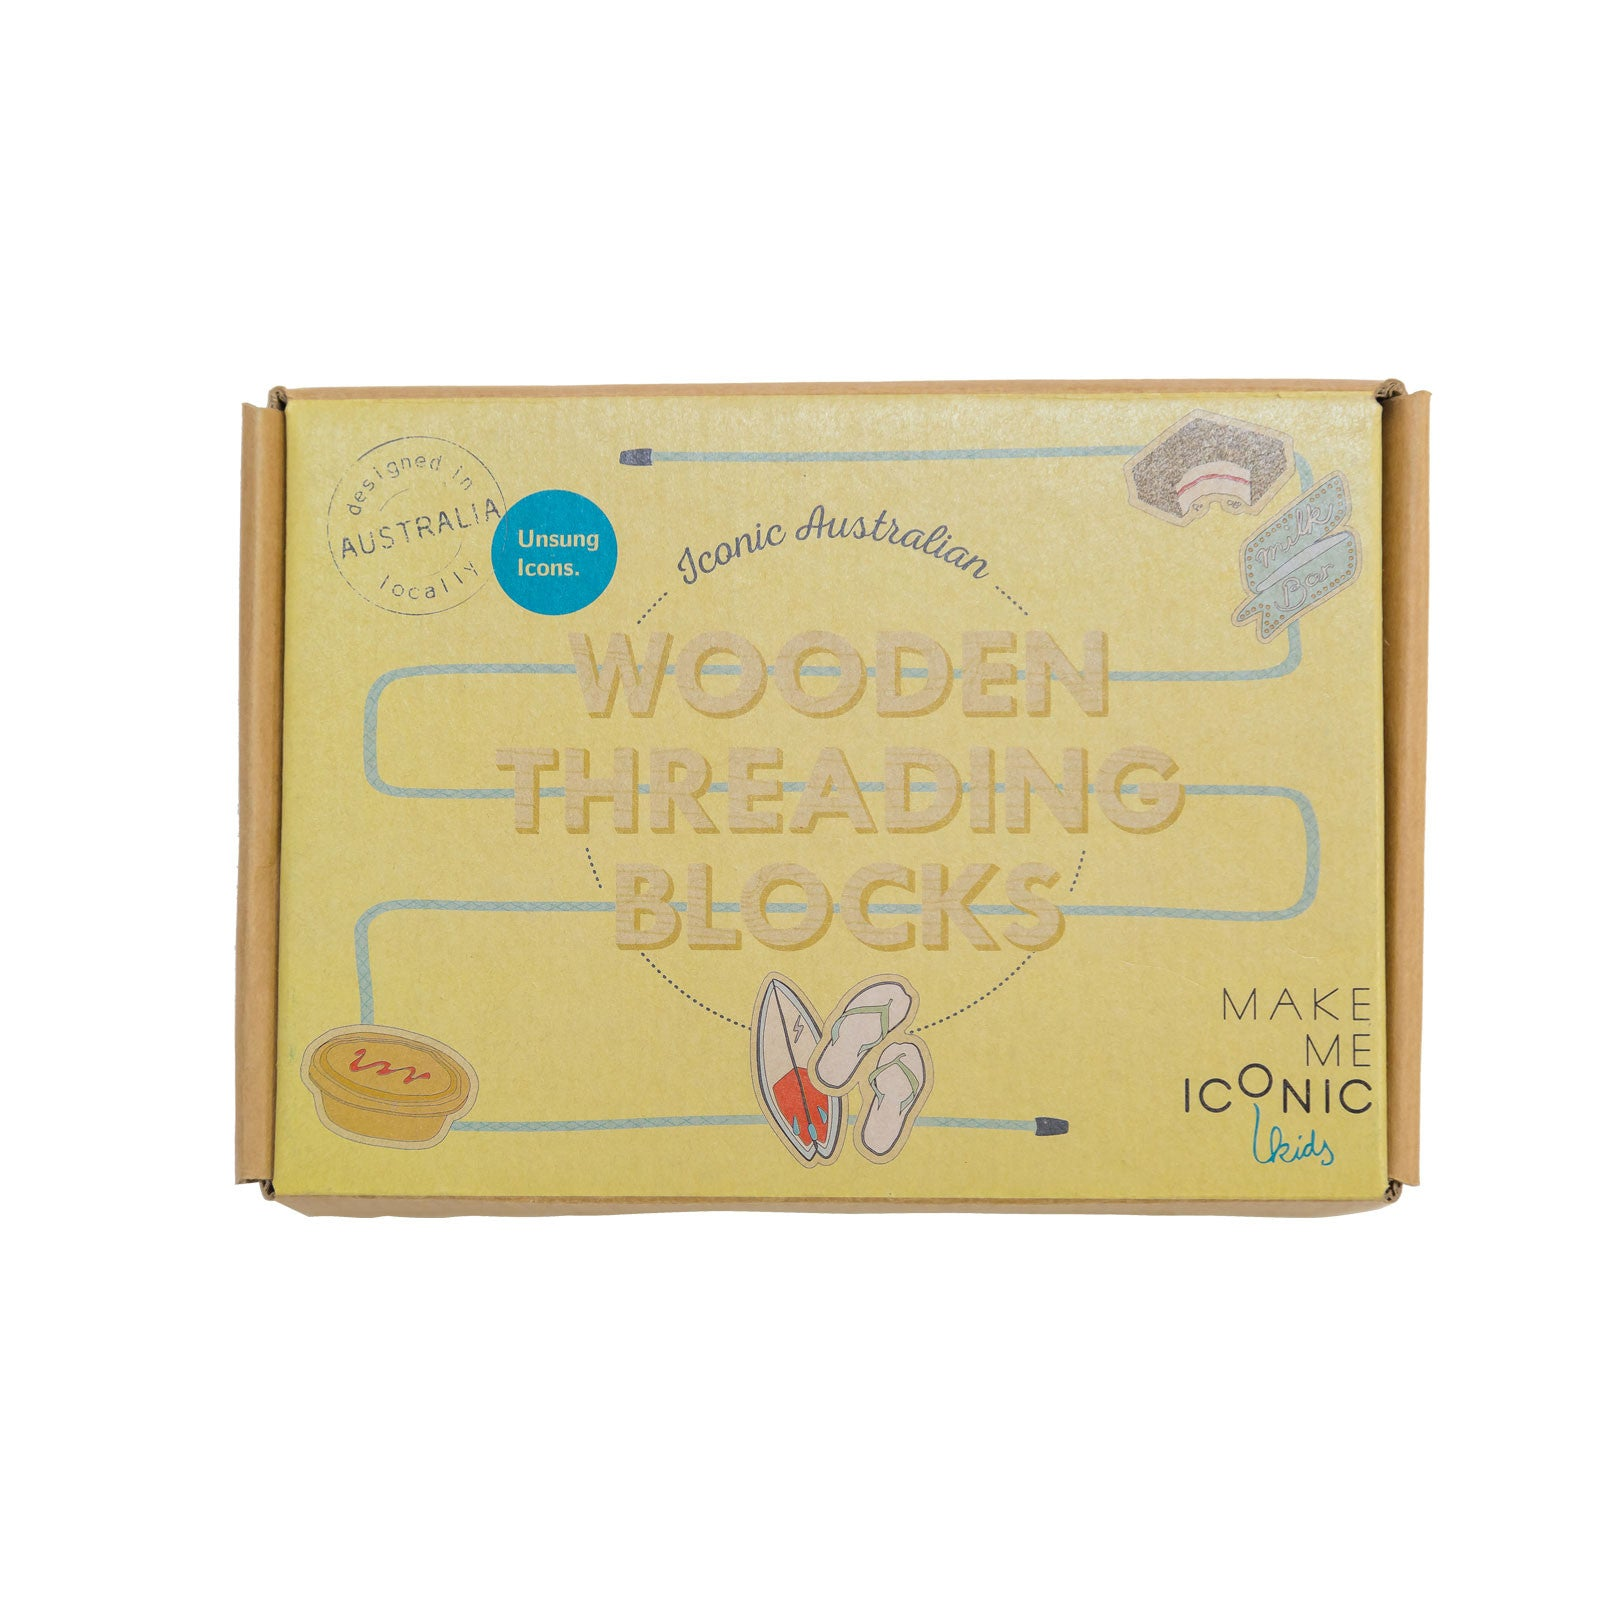 Make Me Iconic Threading Blocks Make Me Iconic Wooden Blocks at Little Earth Nest Eco Shop